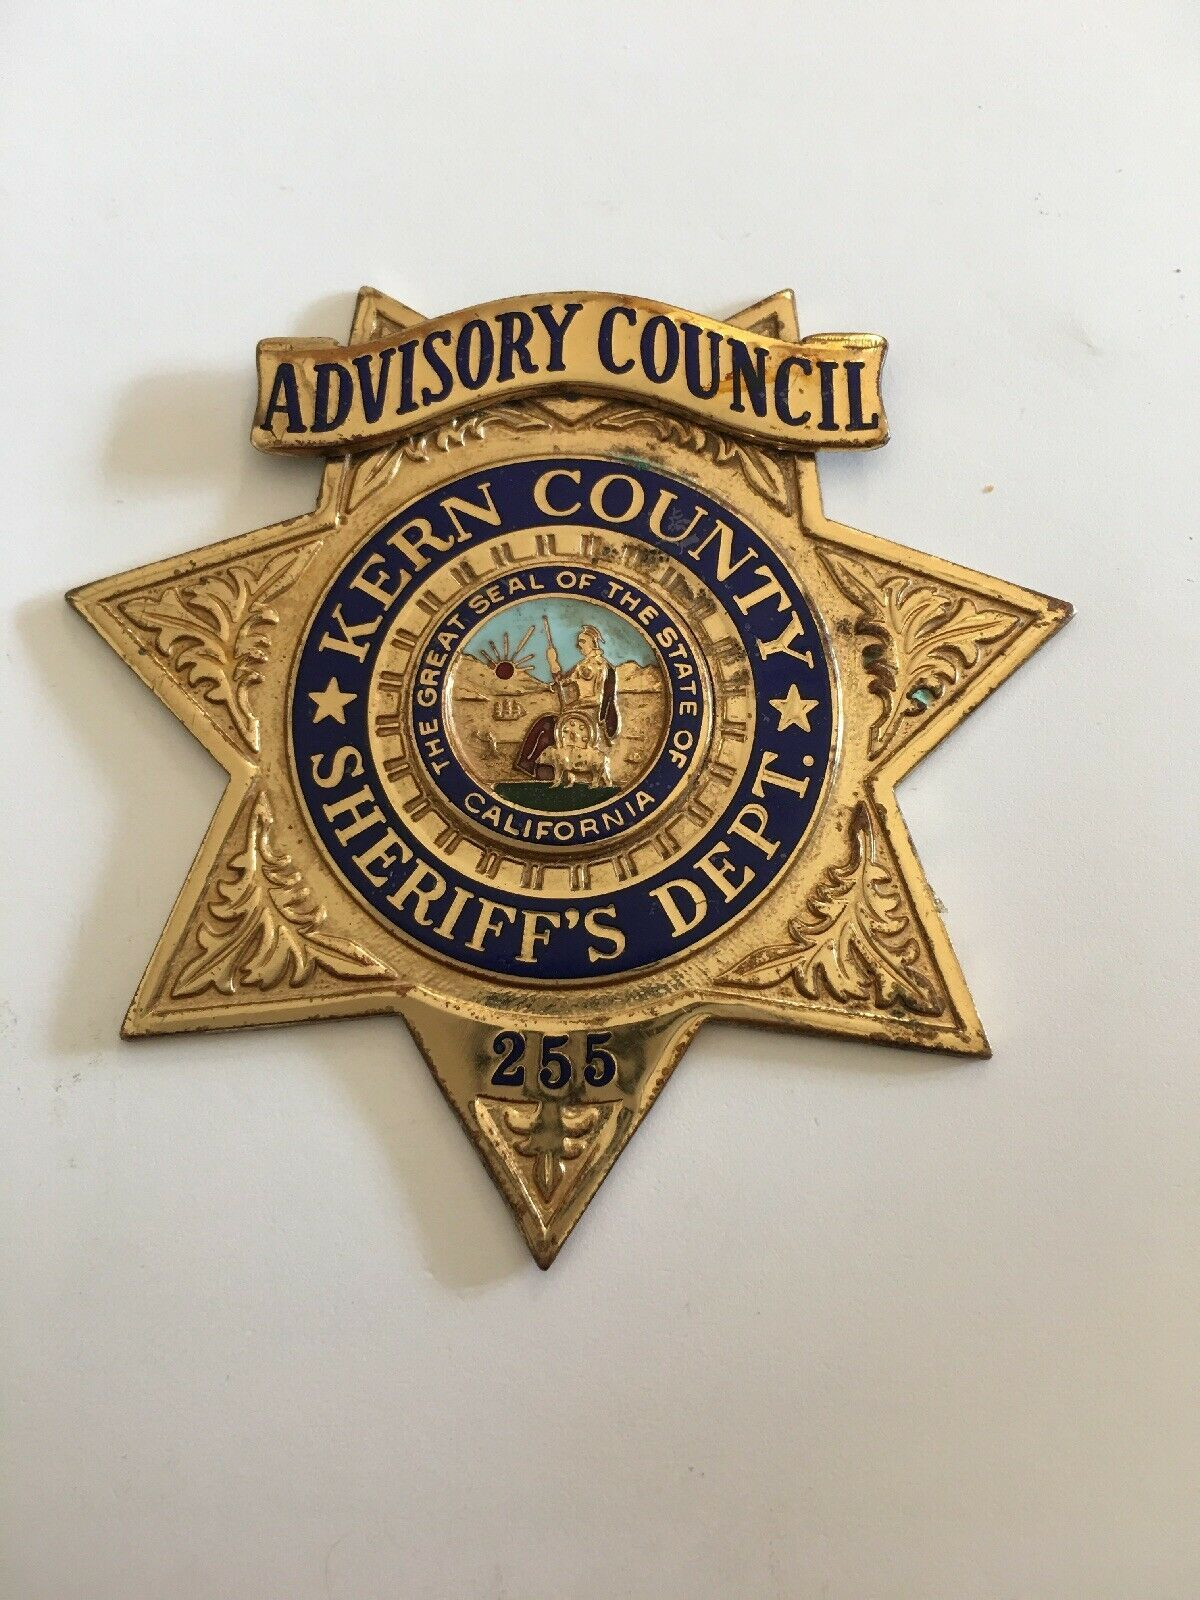 Advisory Council, Kern County Sheriff's Department